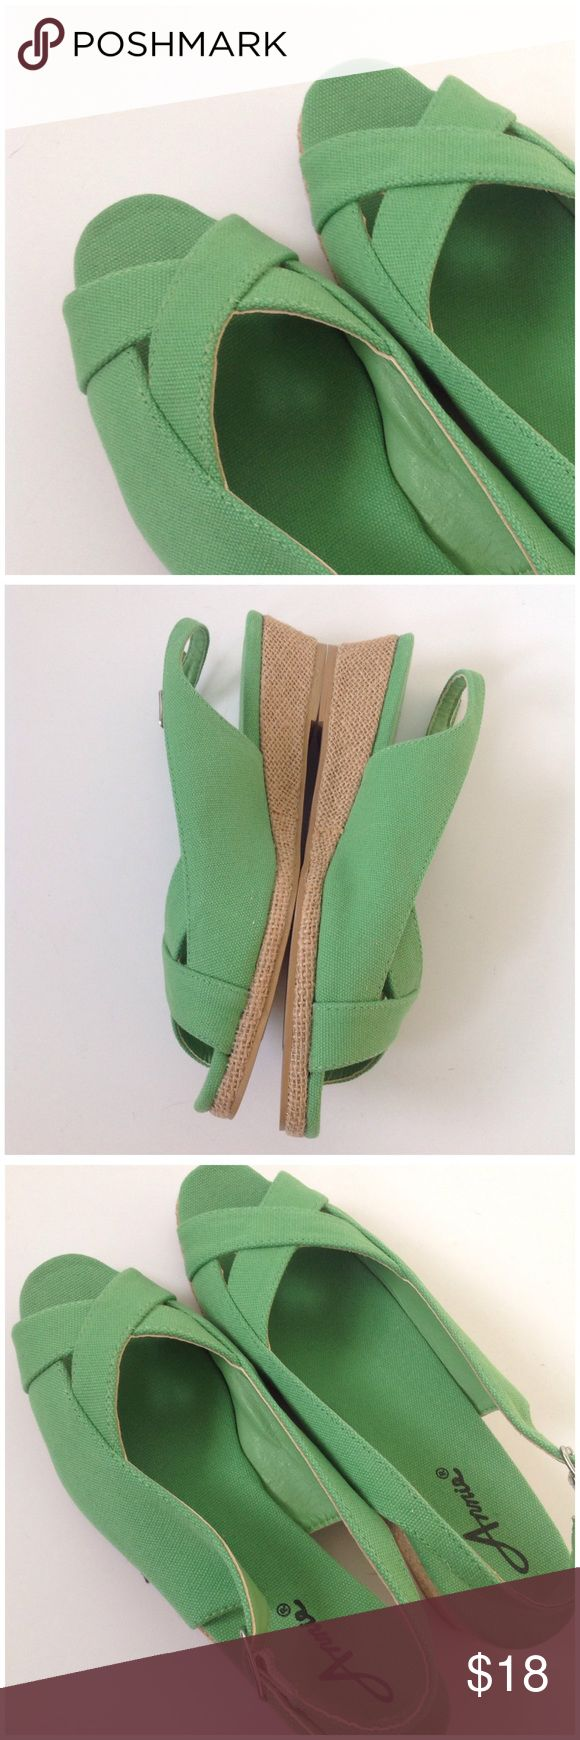 Annie green wedge open toe heels sz 6.5M Cute green open toe wedge shoes. Sz 6.5 never used but don't have original box anymore Annie Shoes Platforms